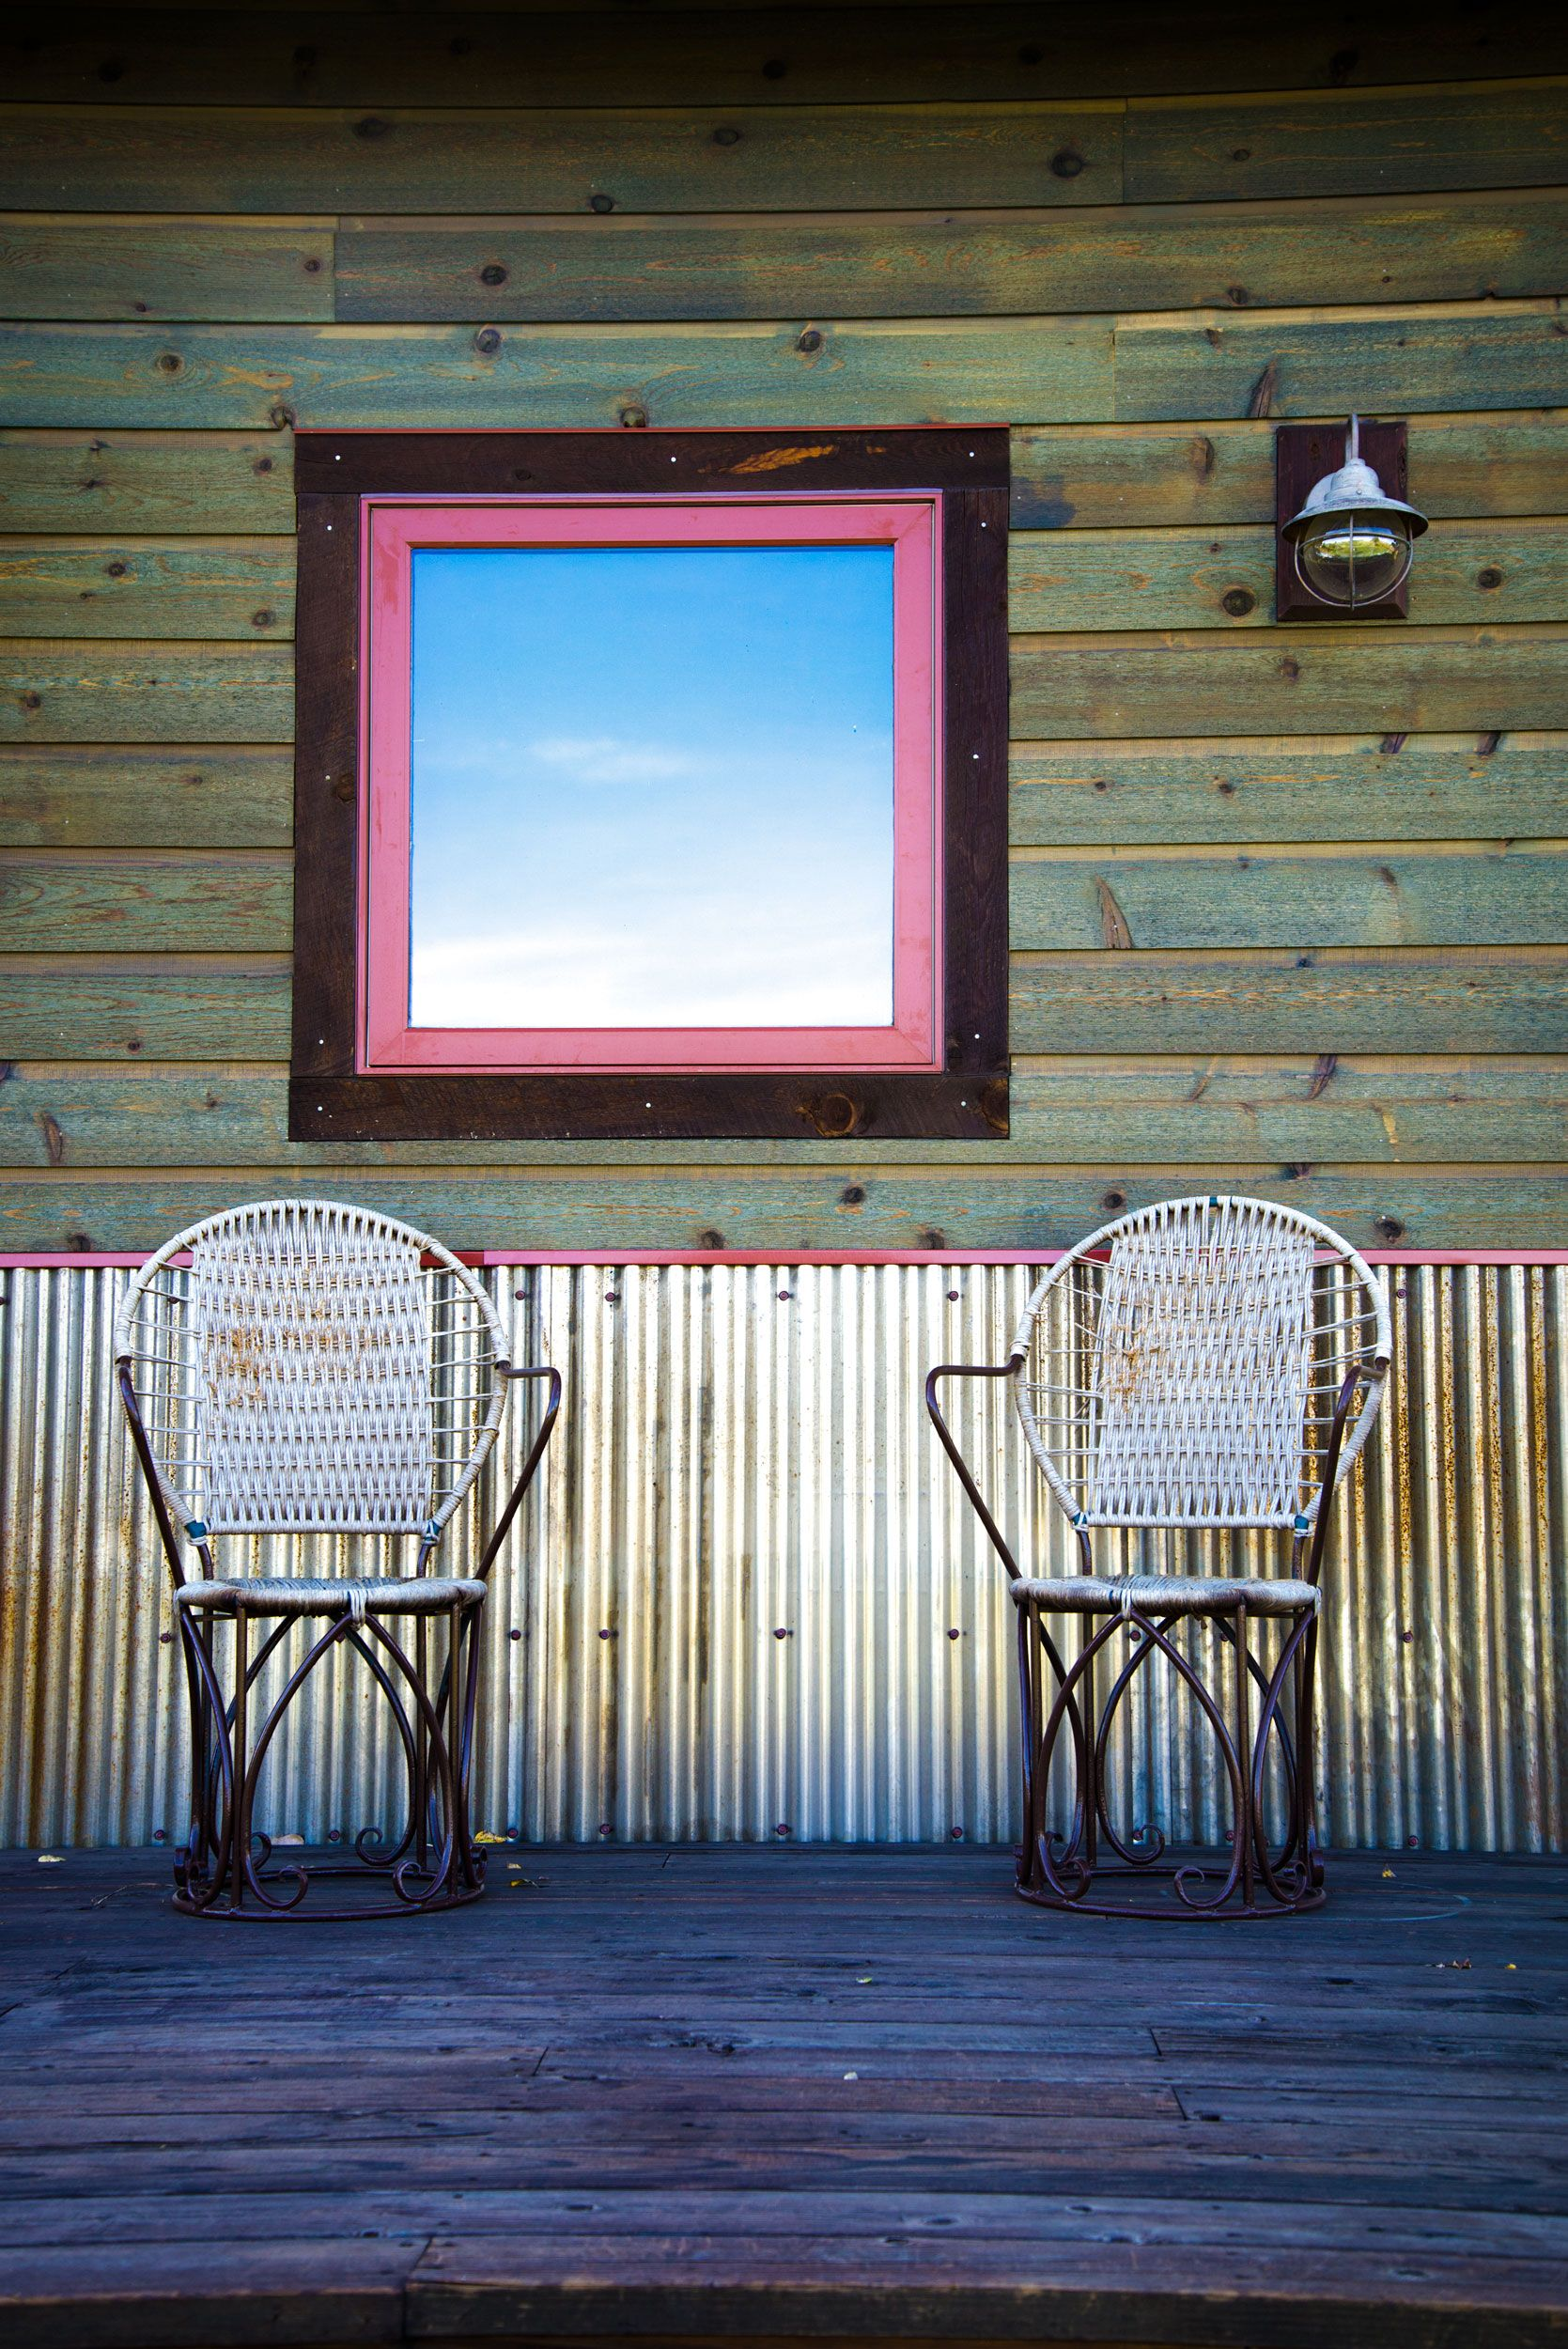 How To Install A Corrugated Metal Accent Wall: 5 Ways To Update Your Home With Corrugated Metal In 2020